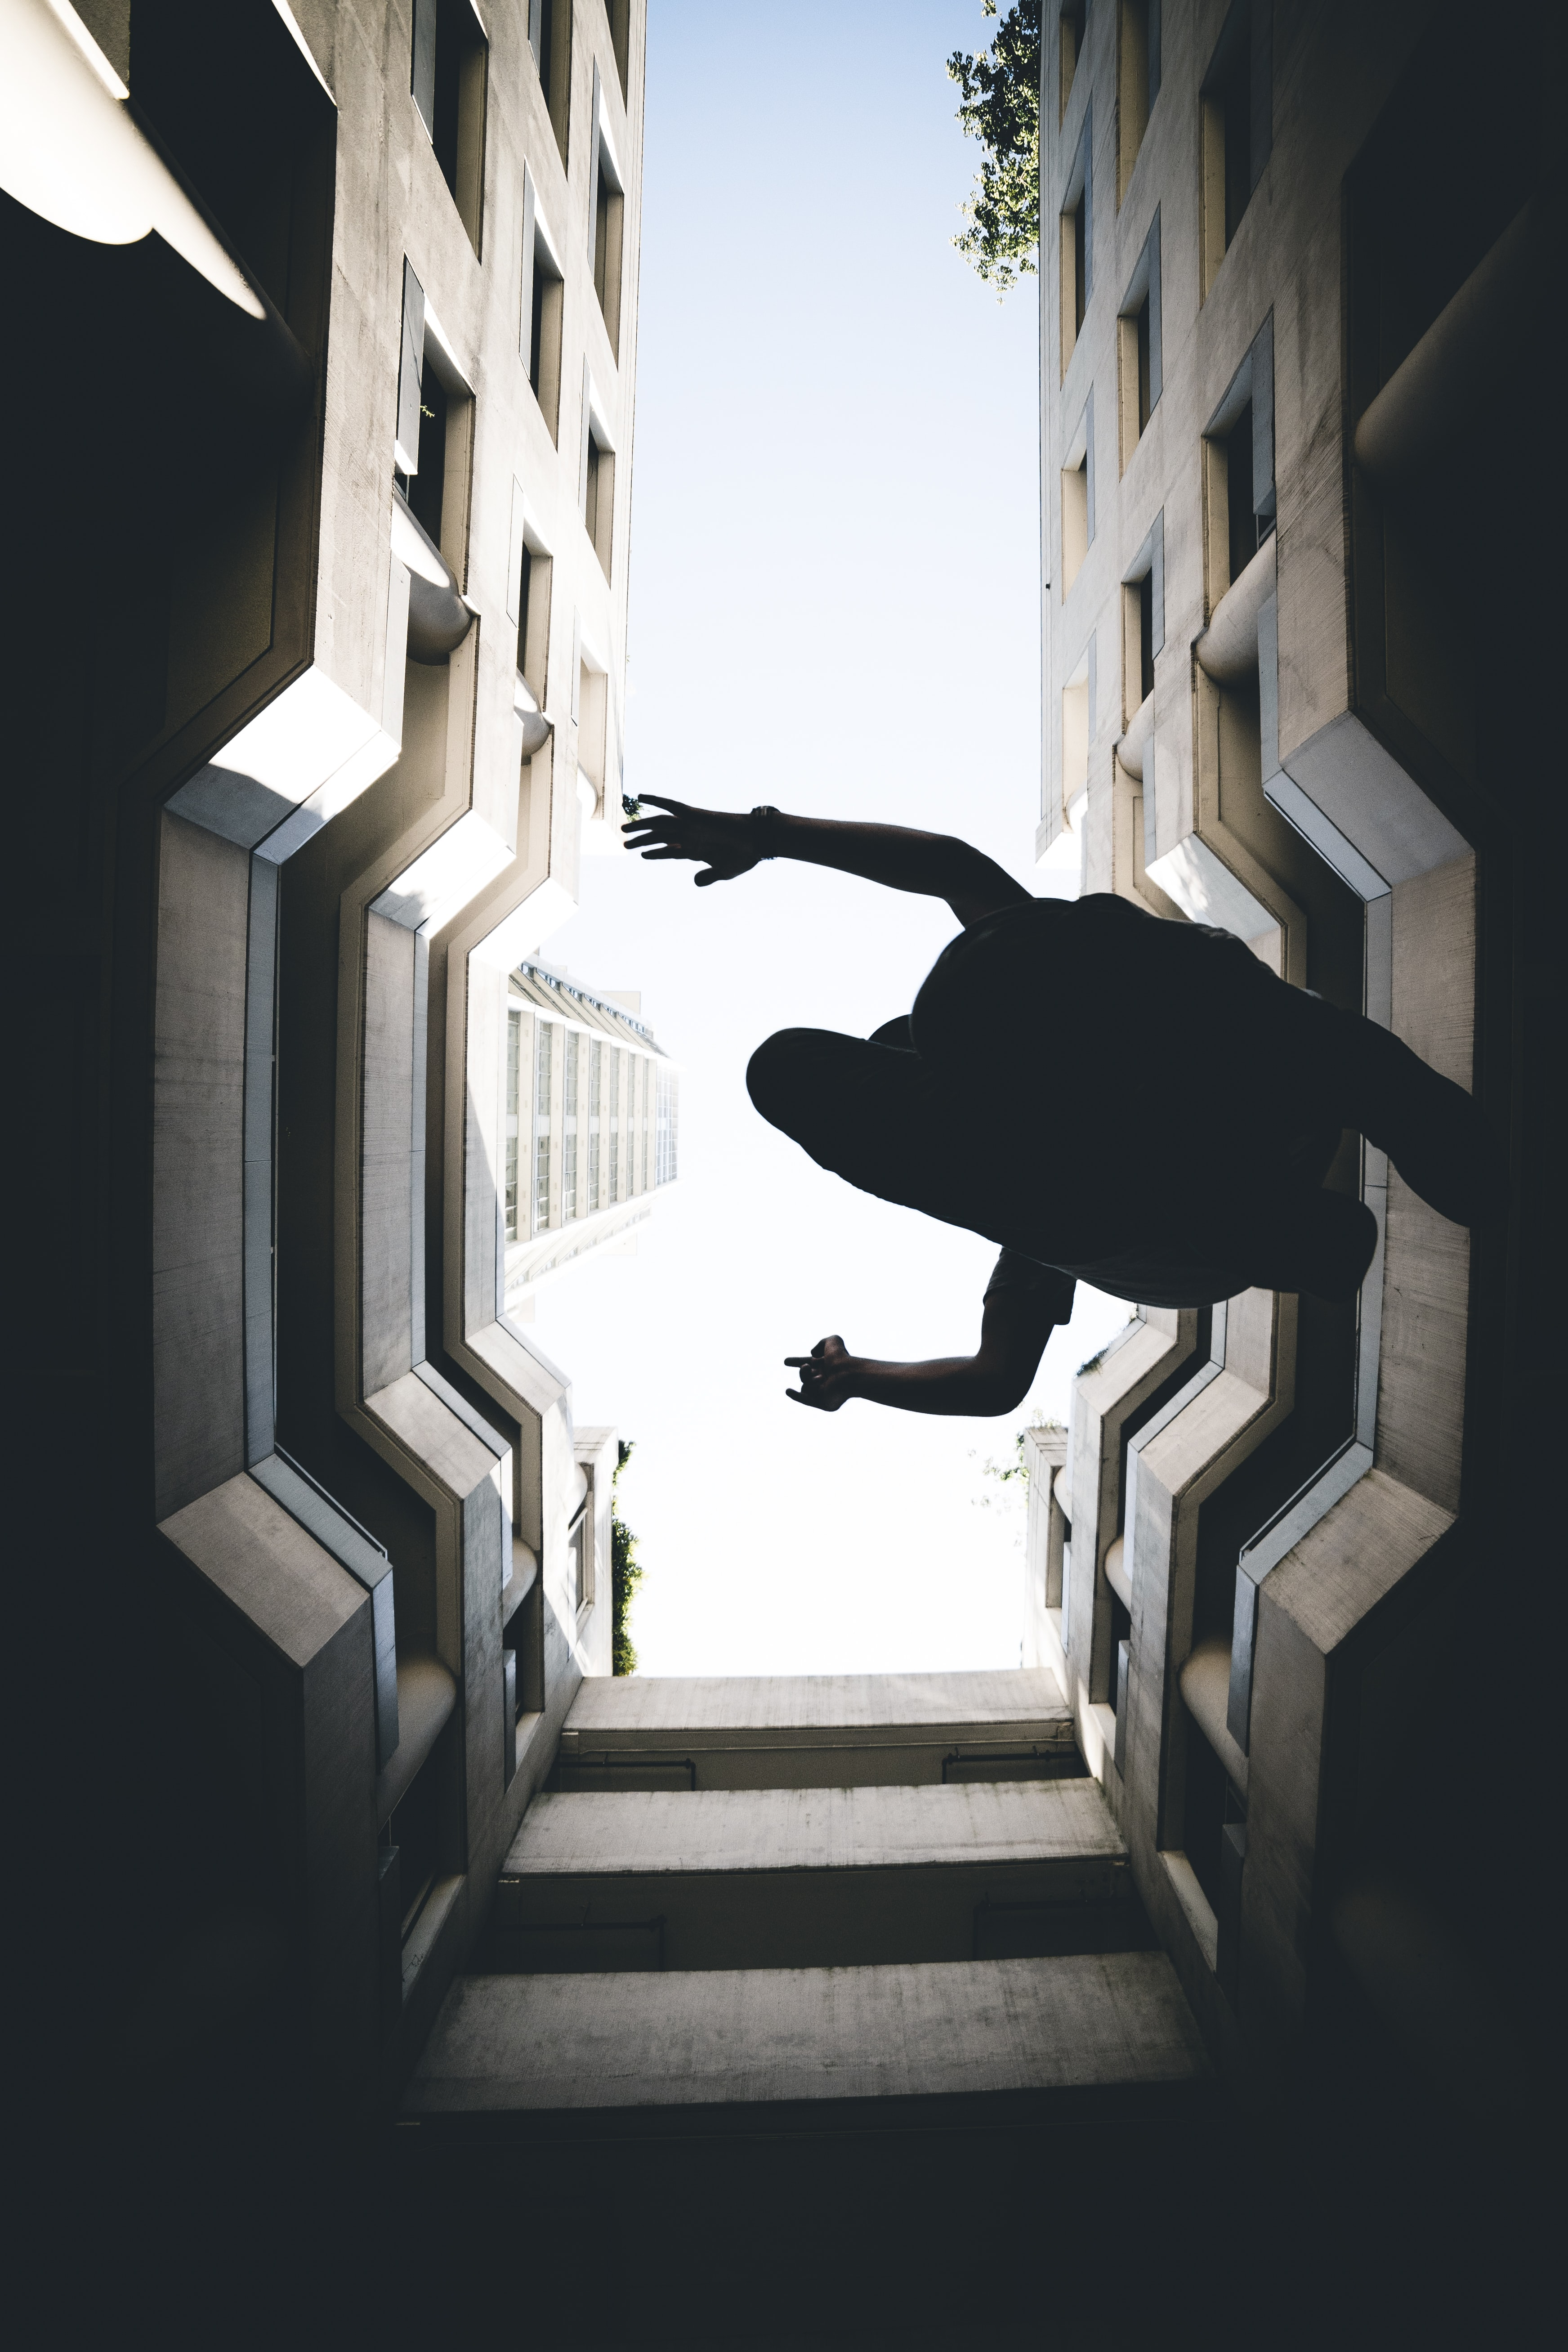 man leaps in middle of high-rise buildings